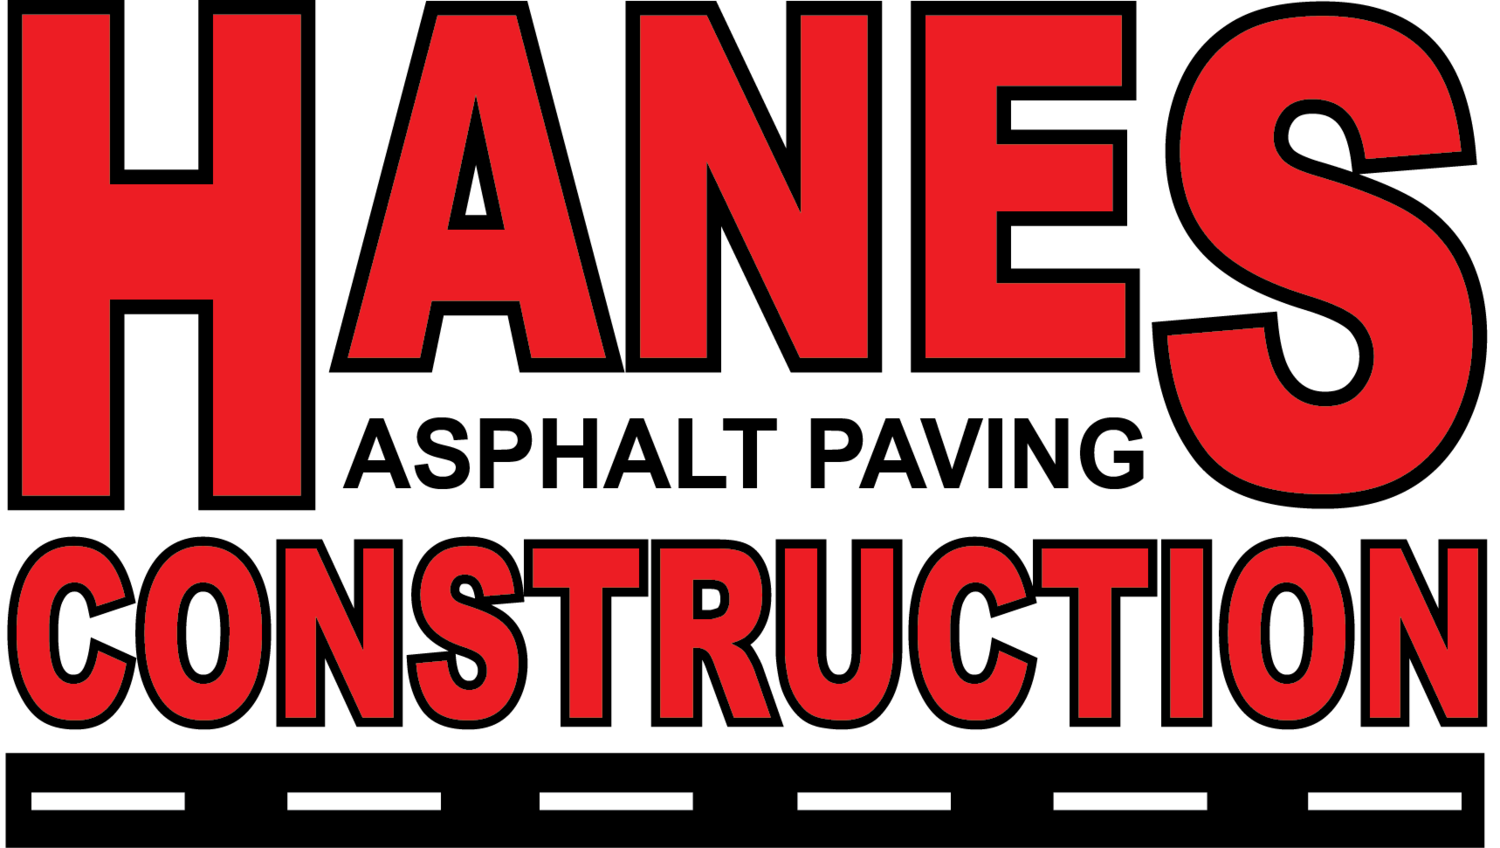 Hanes Asphalt Paving Construction